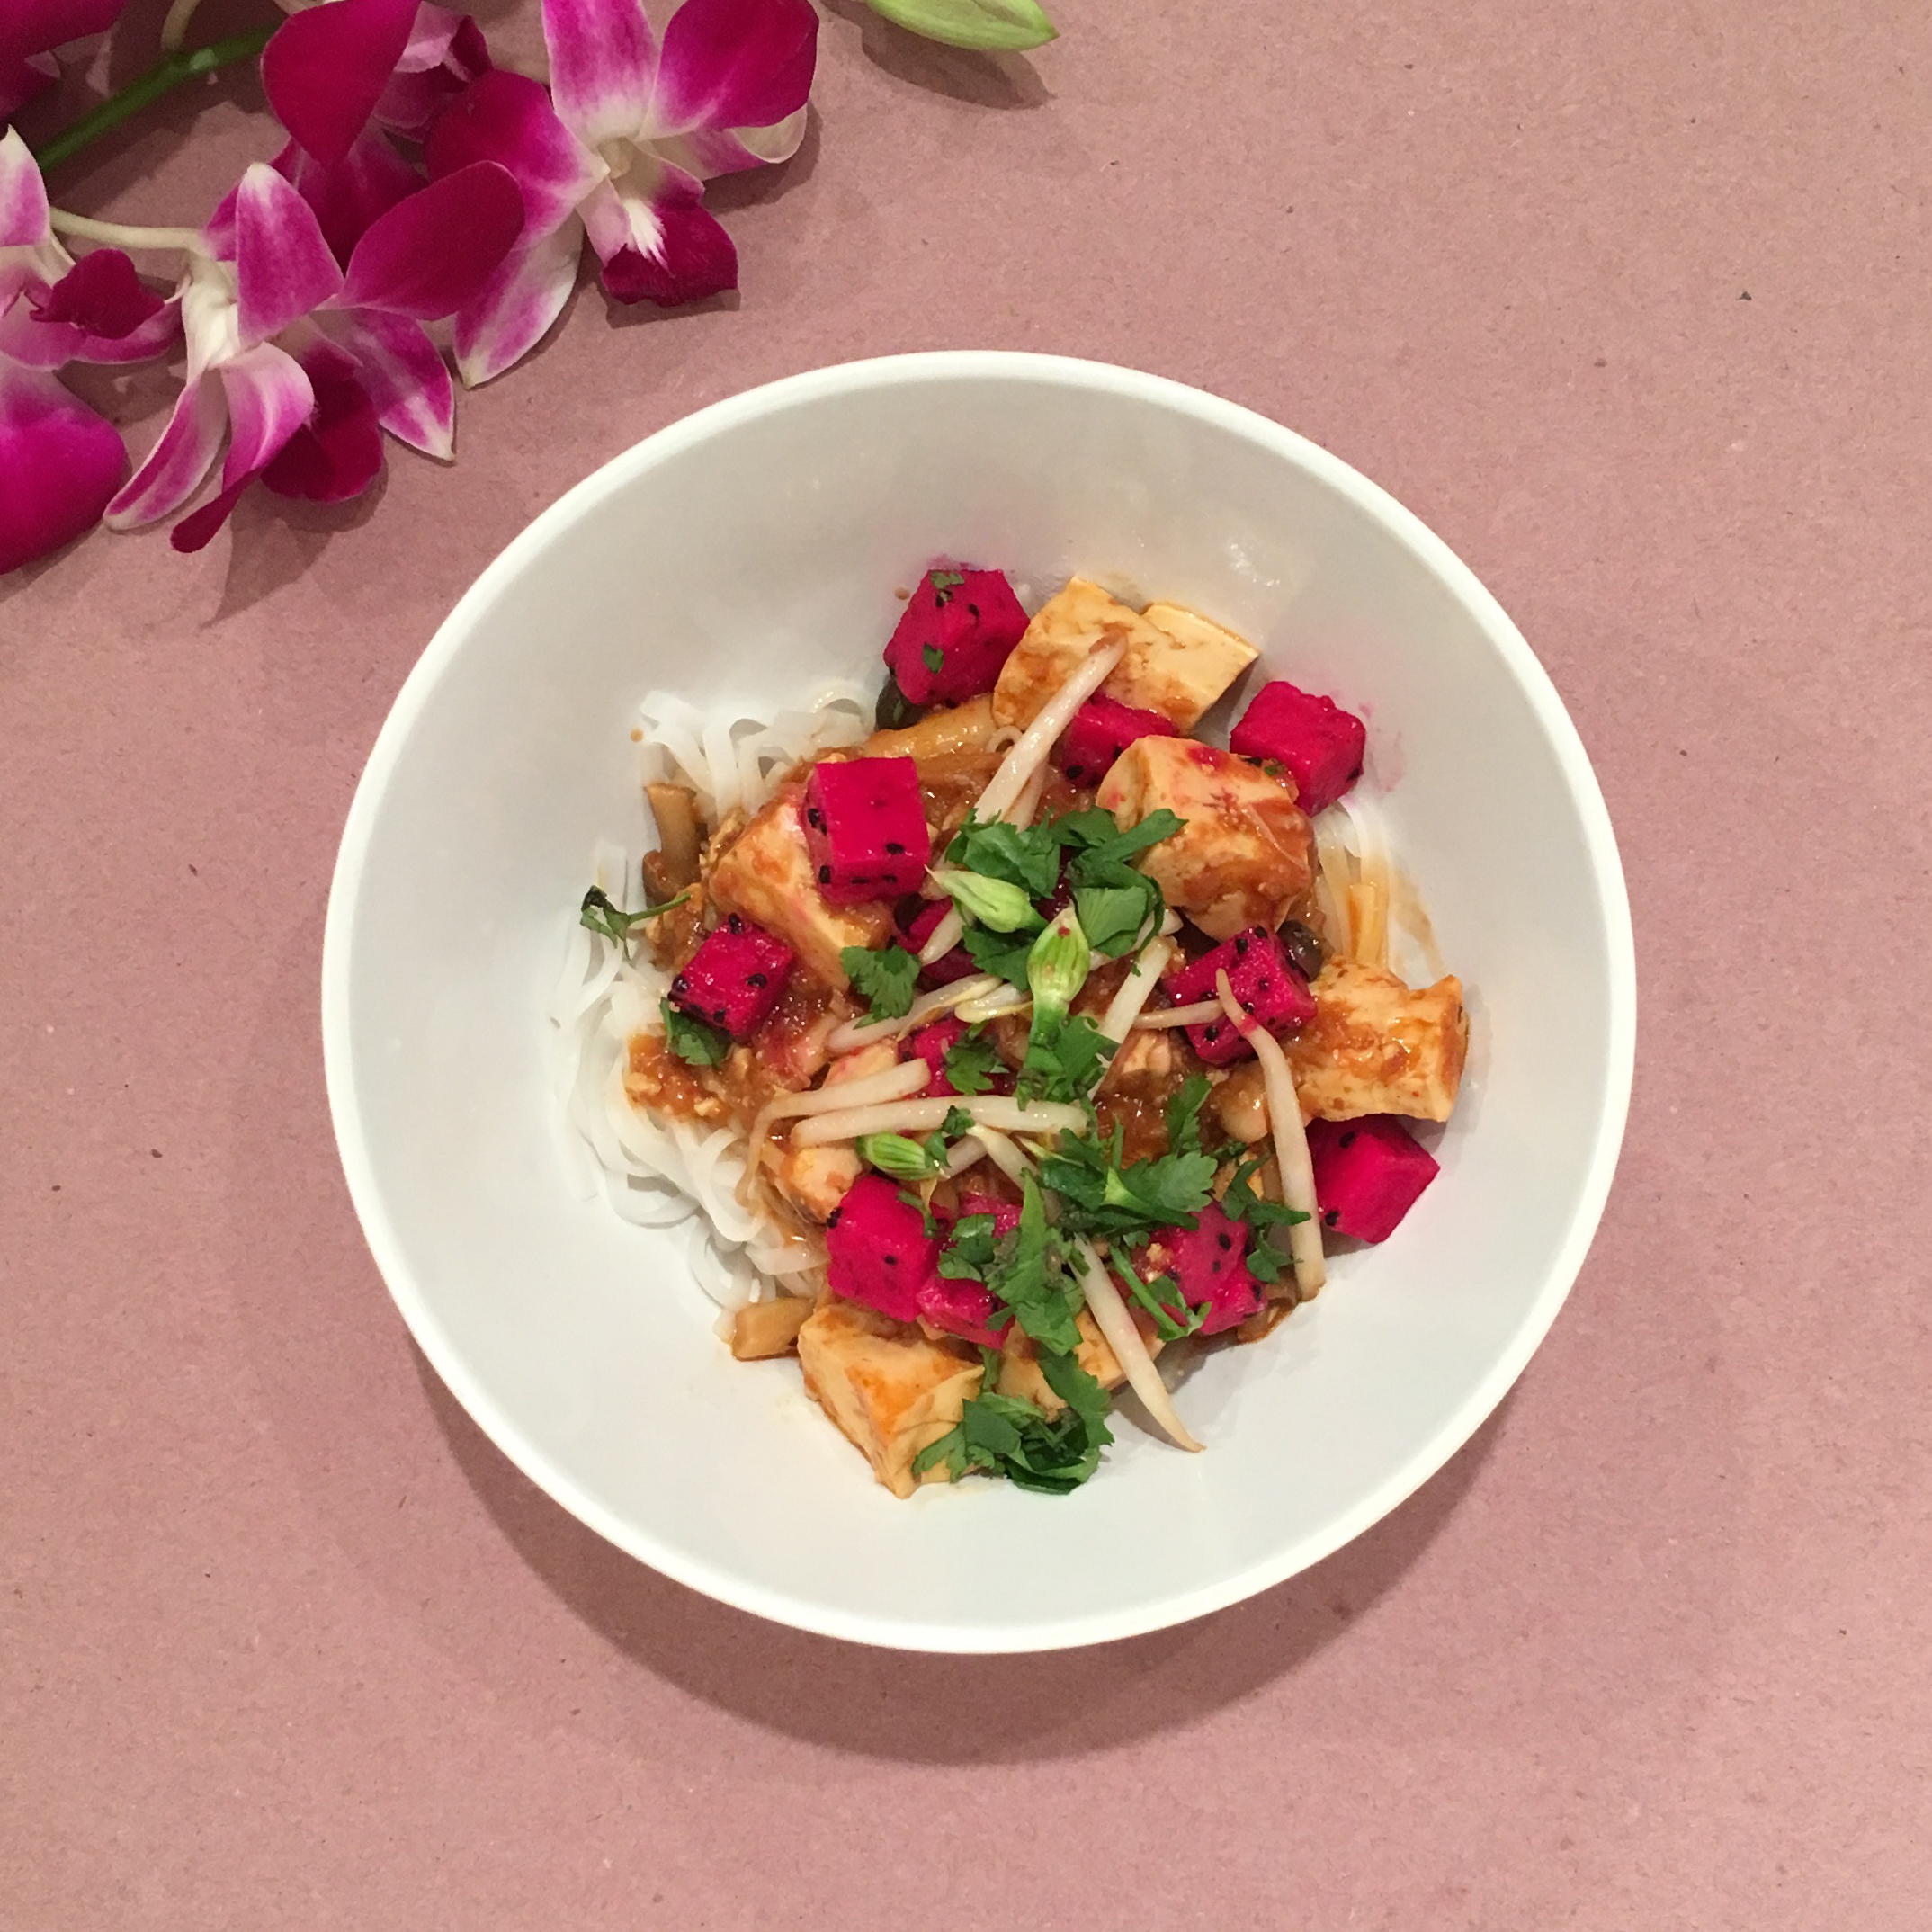 Yooeating entree round: Rice noodles with miso tofu, dragonfruit, and bean sprouts